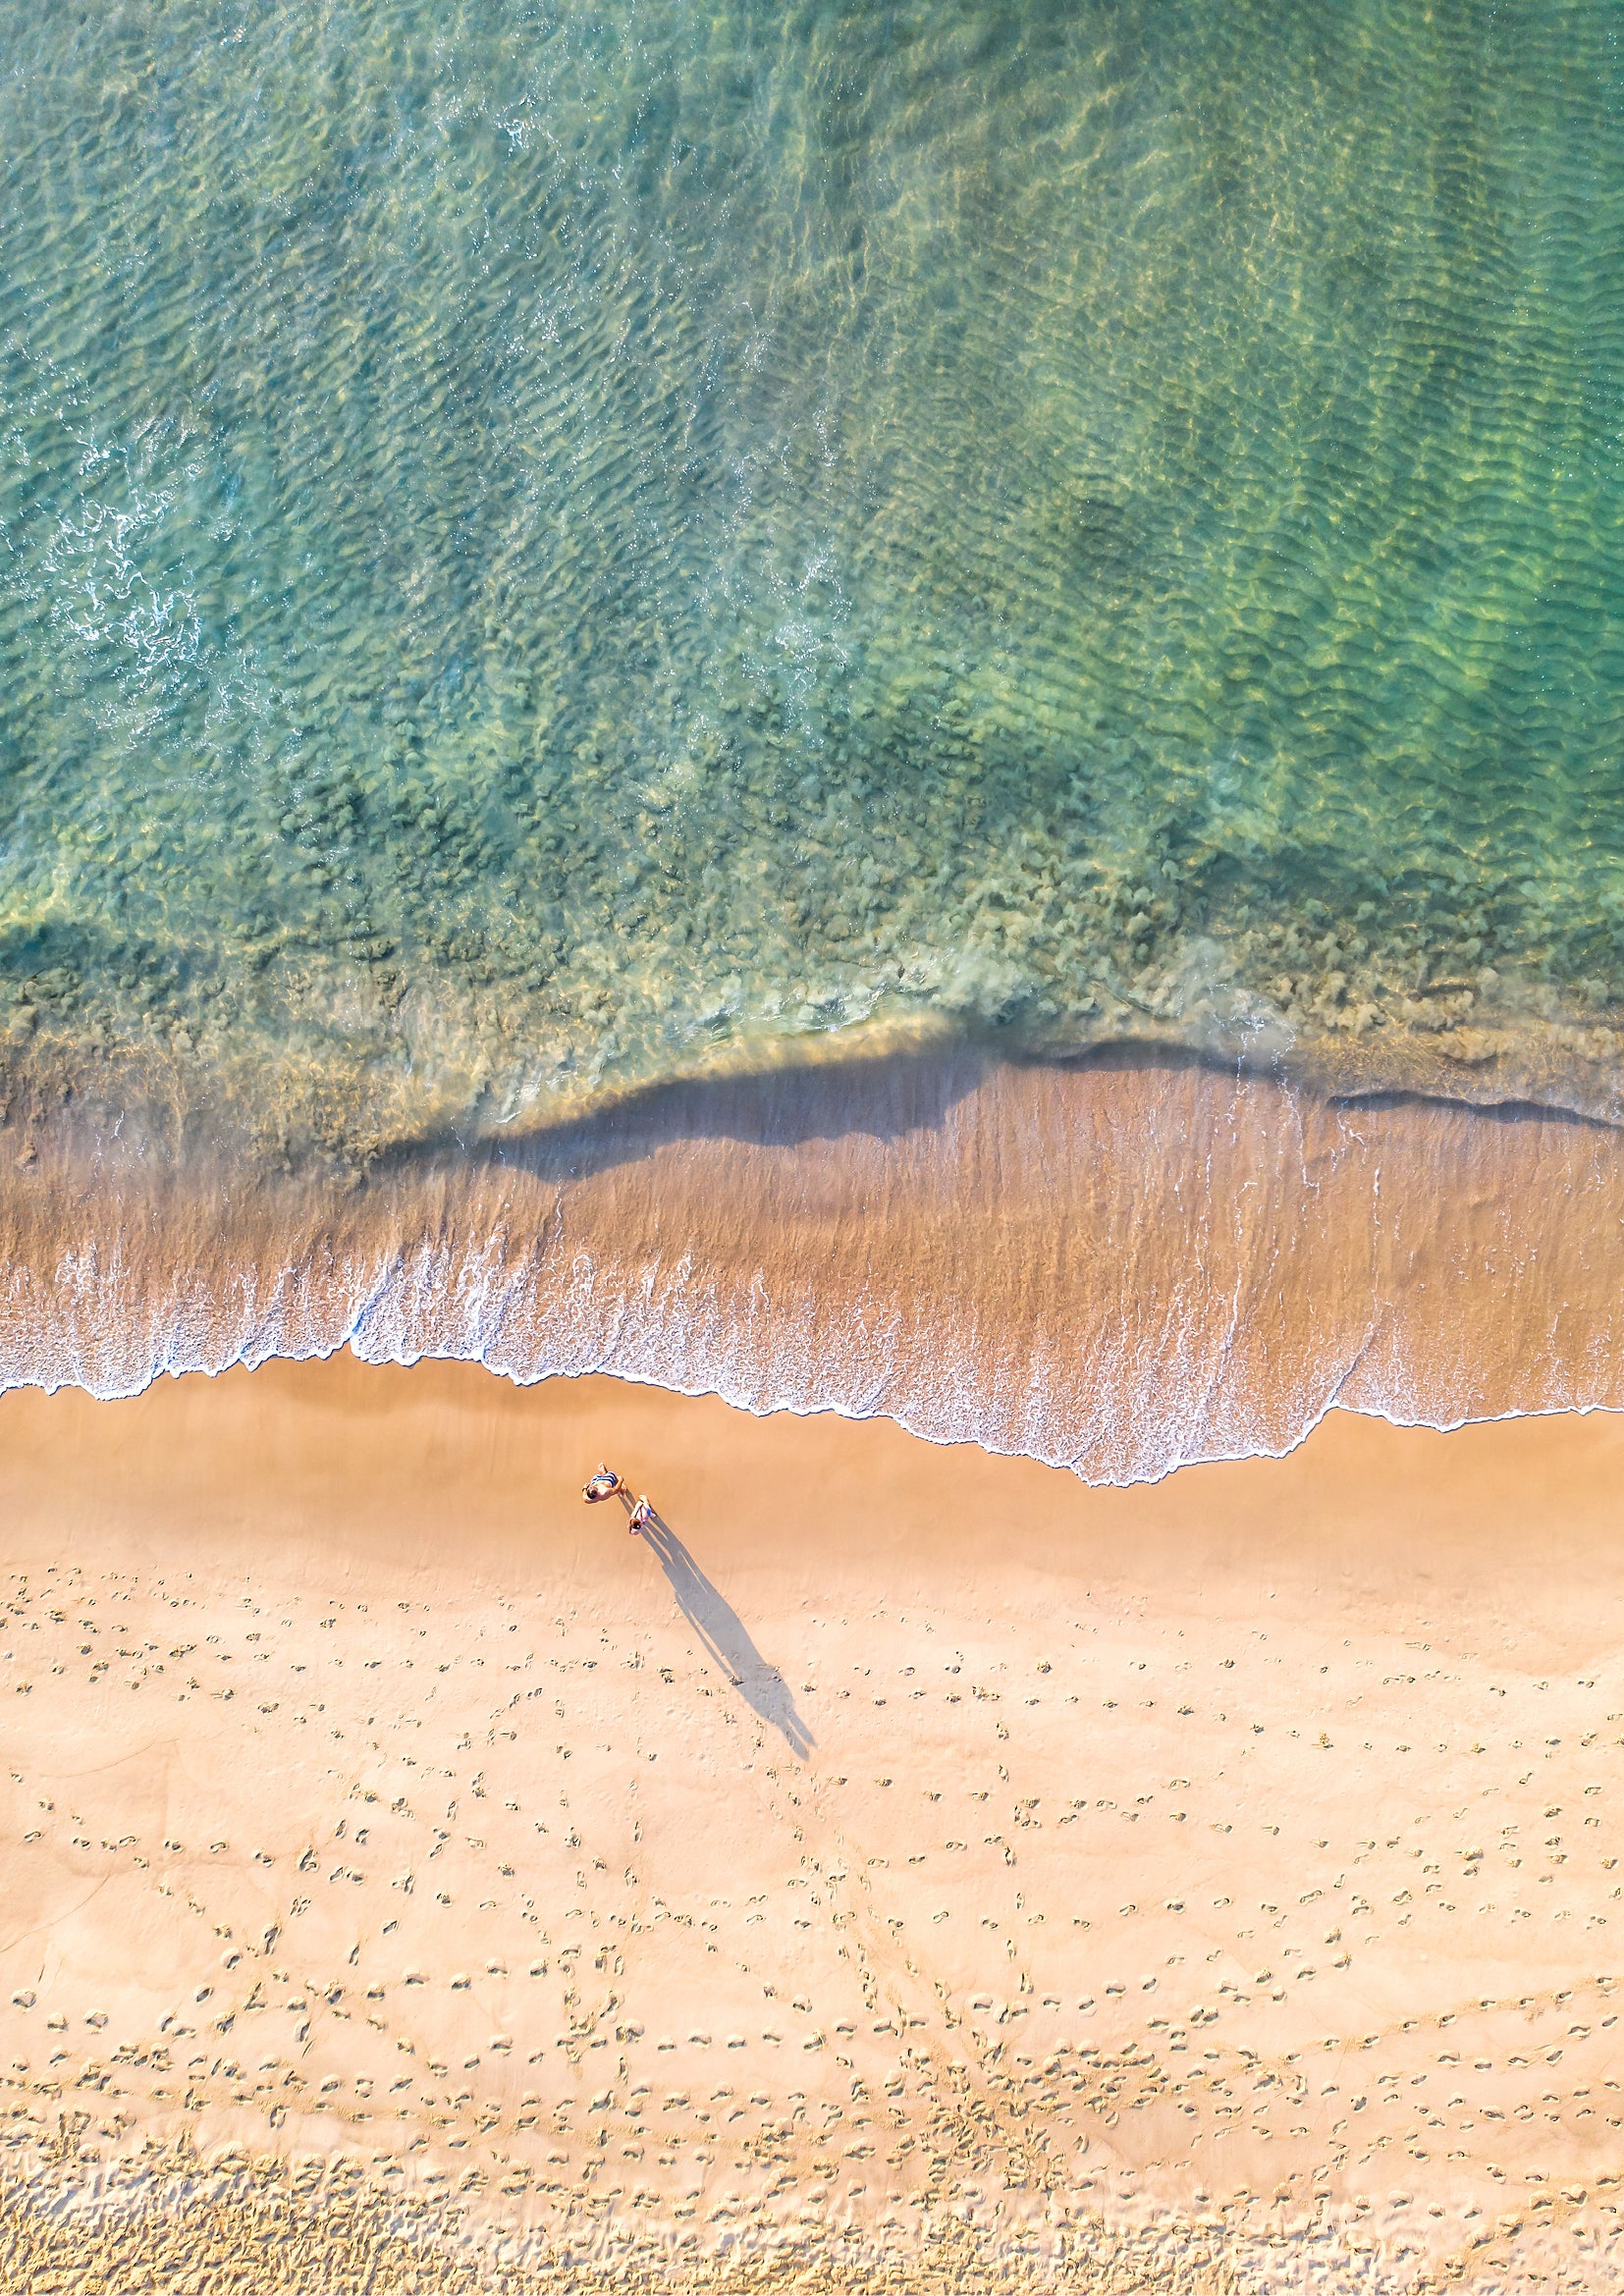 Coastal aerial photographic print - Newcastle Beach, NSW Australia